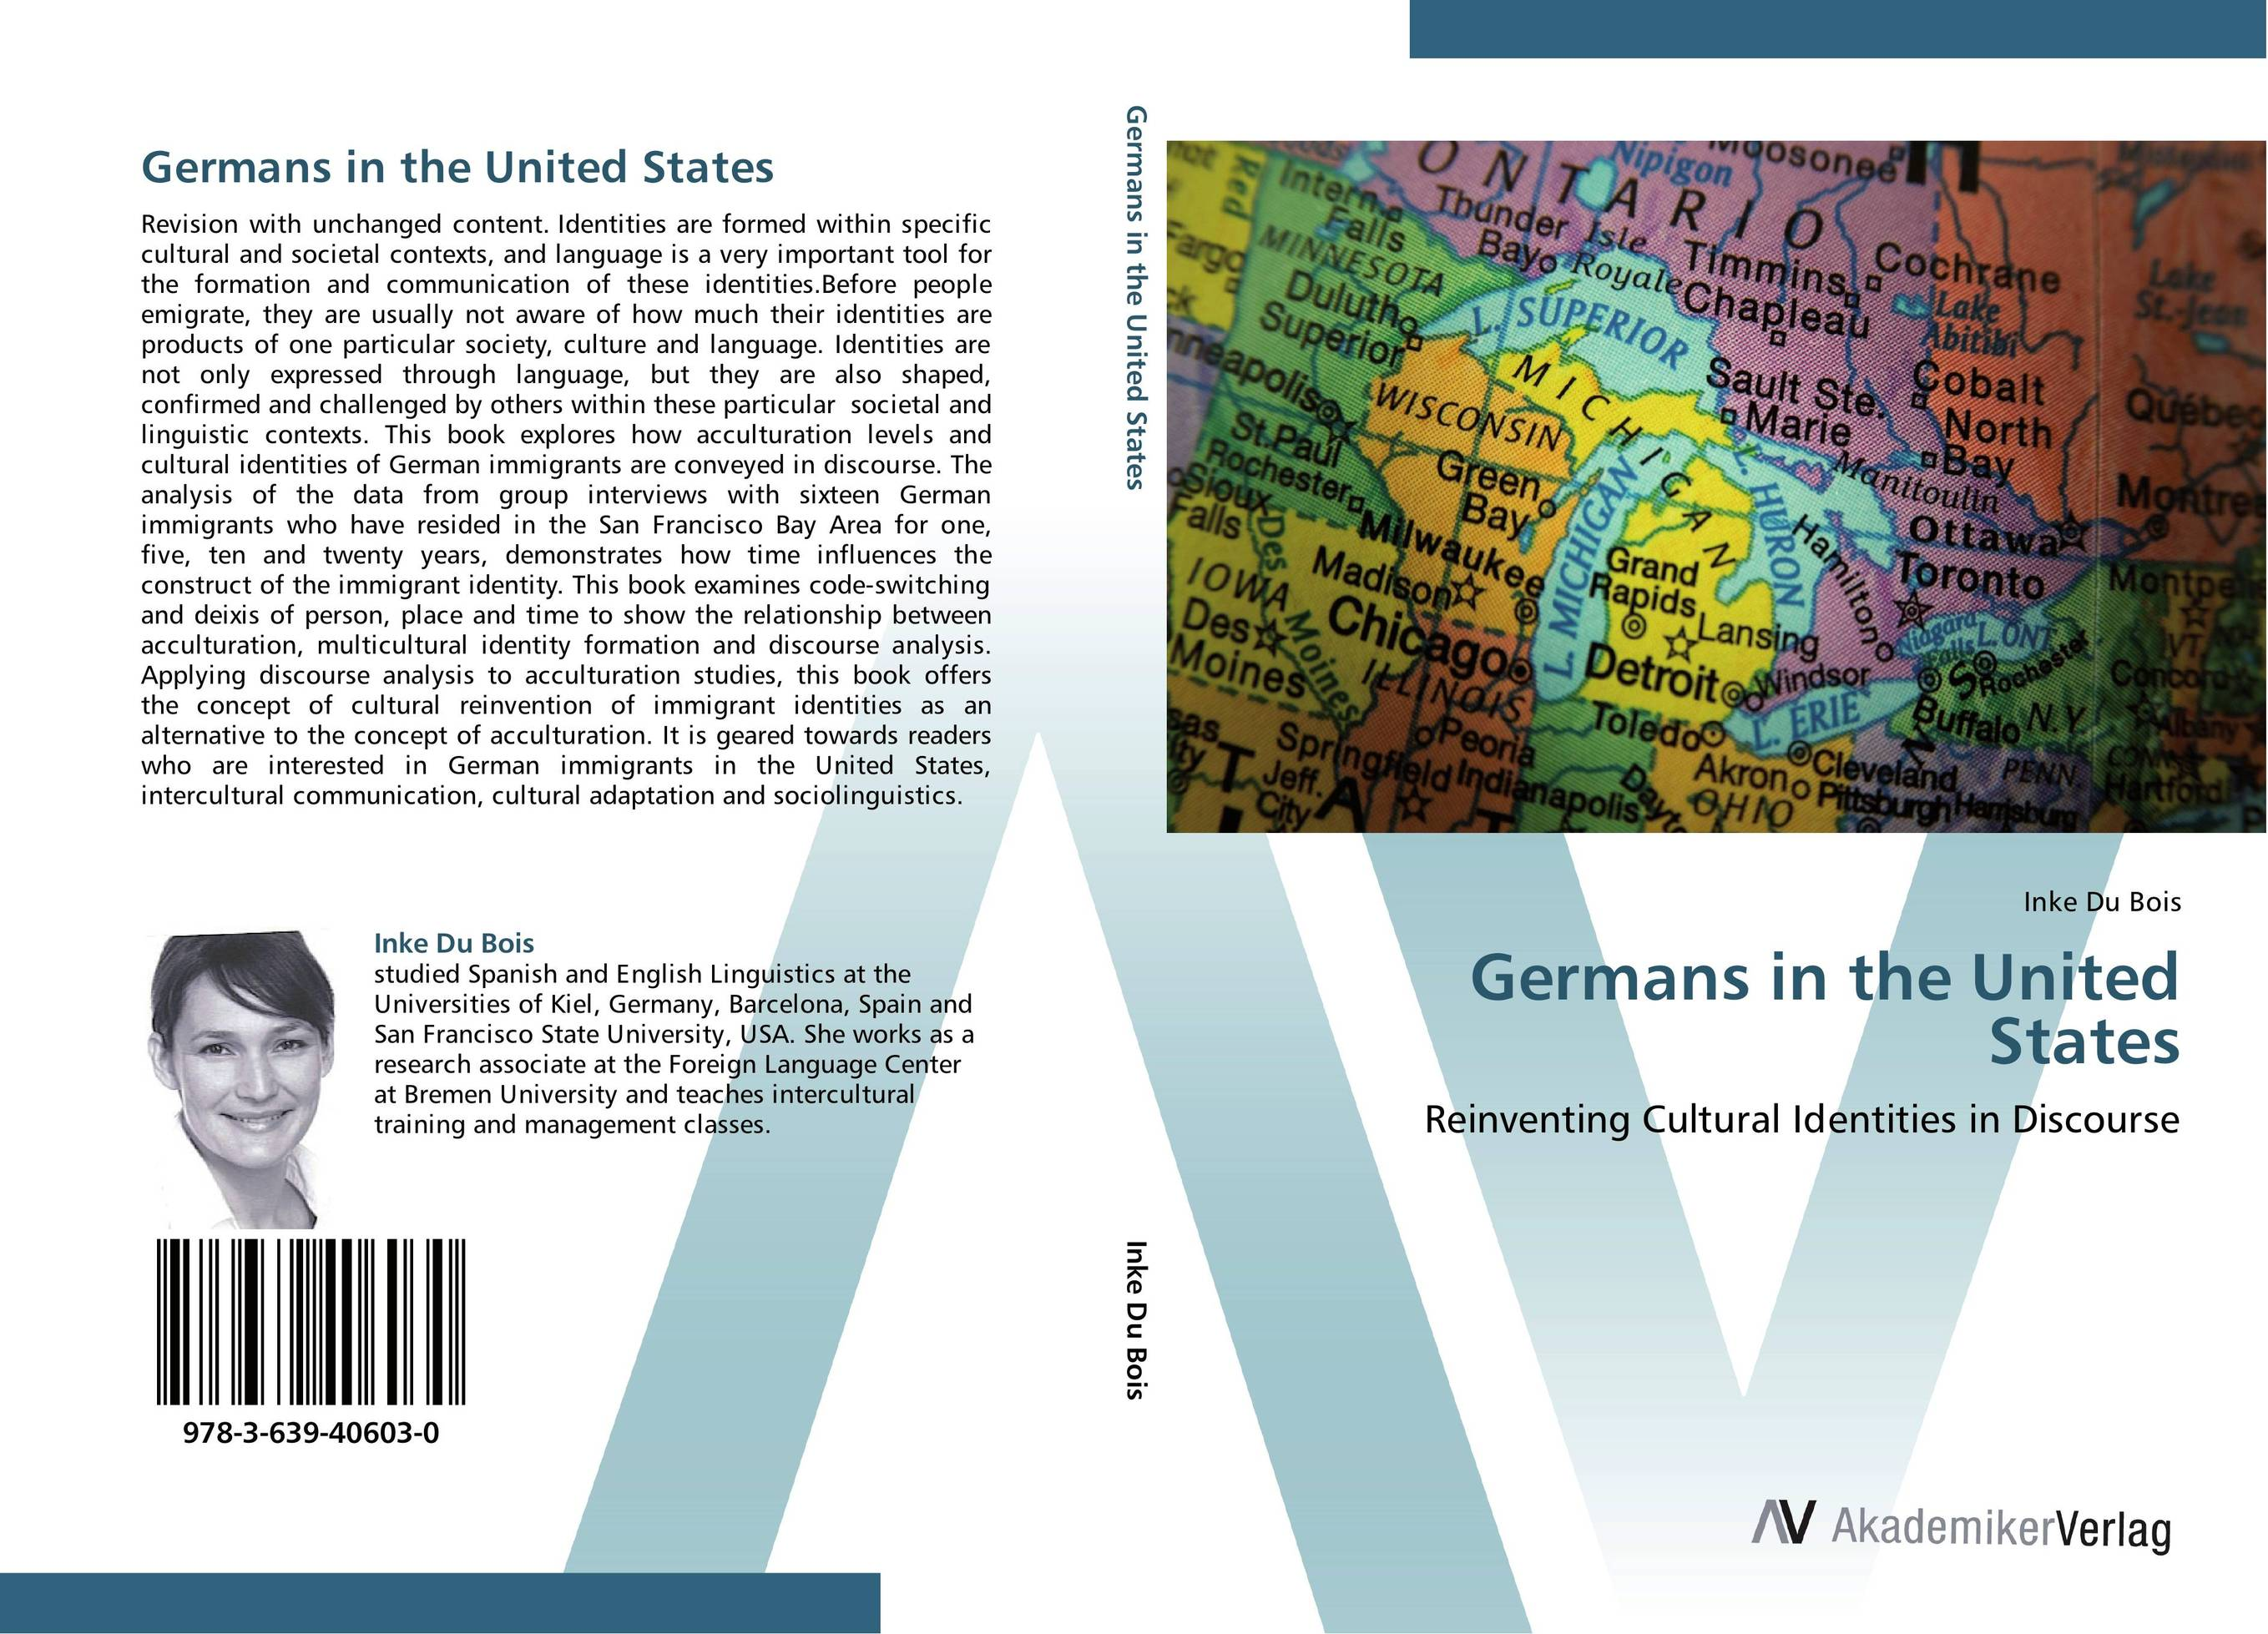 Germans in the United States